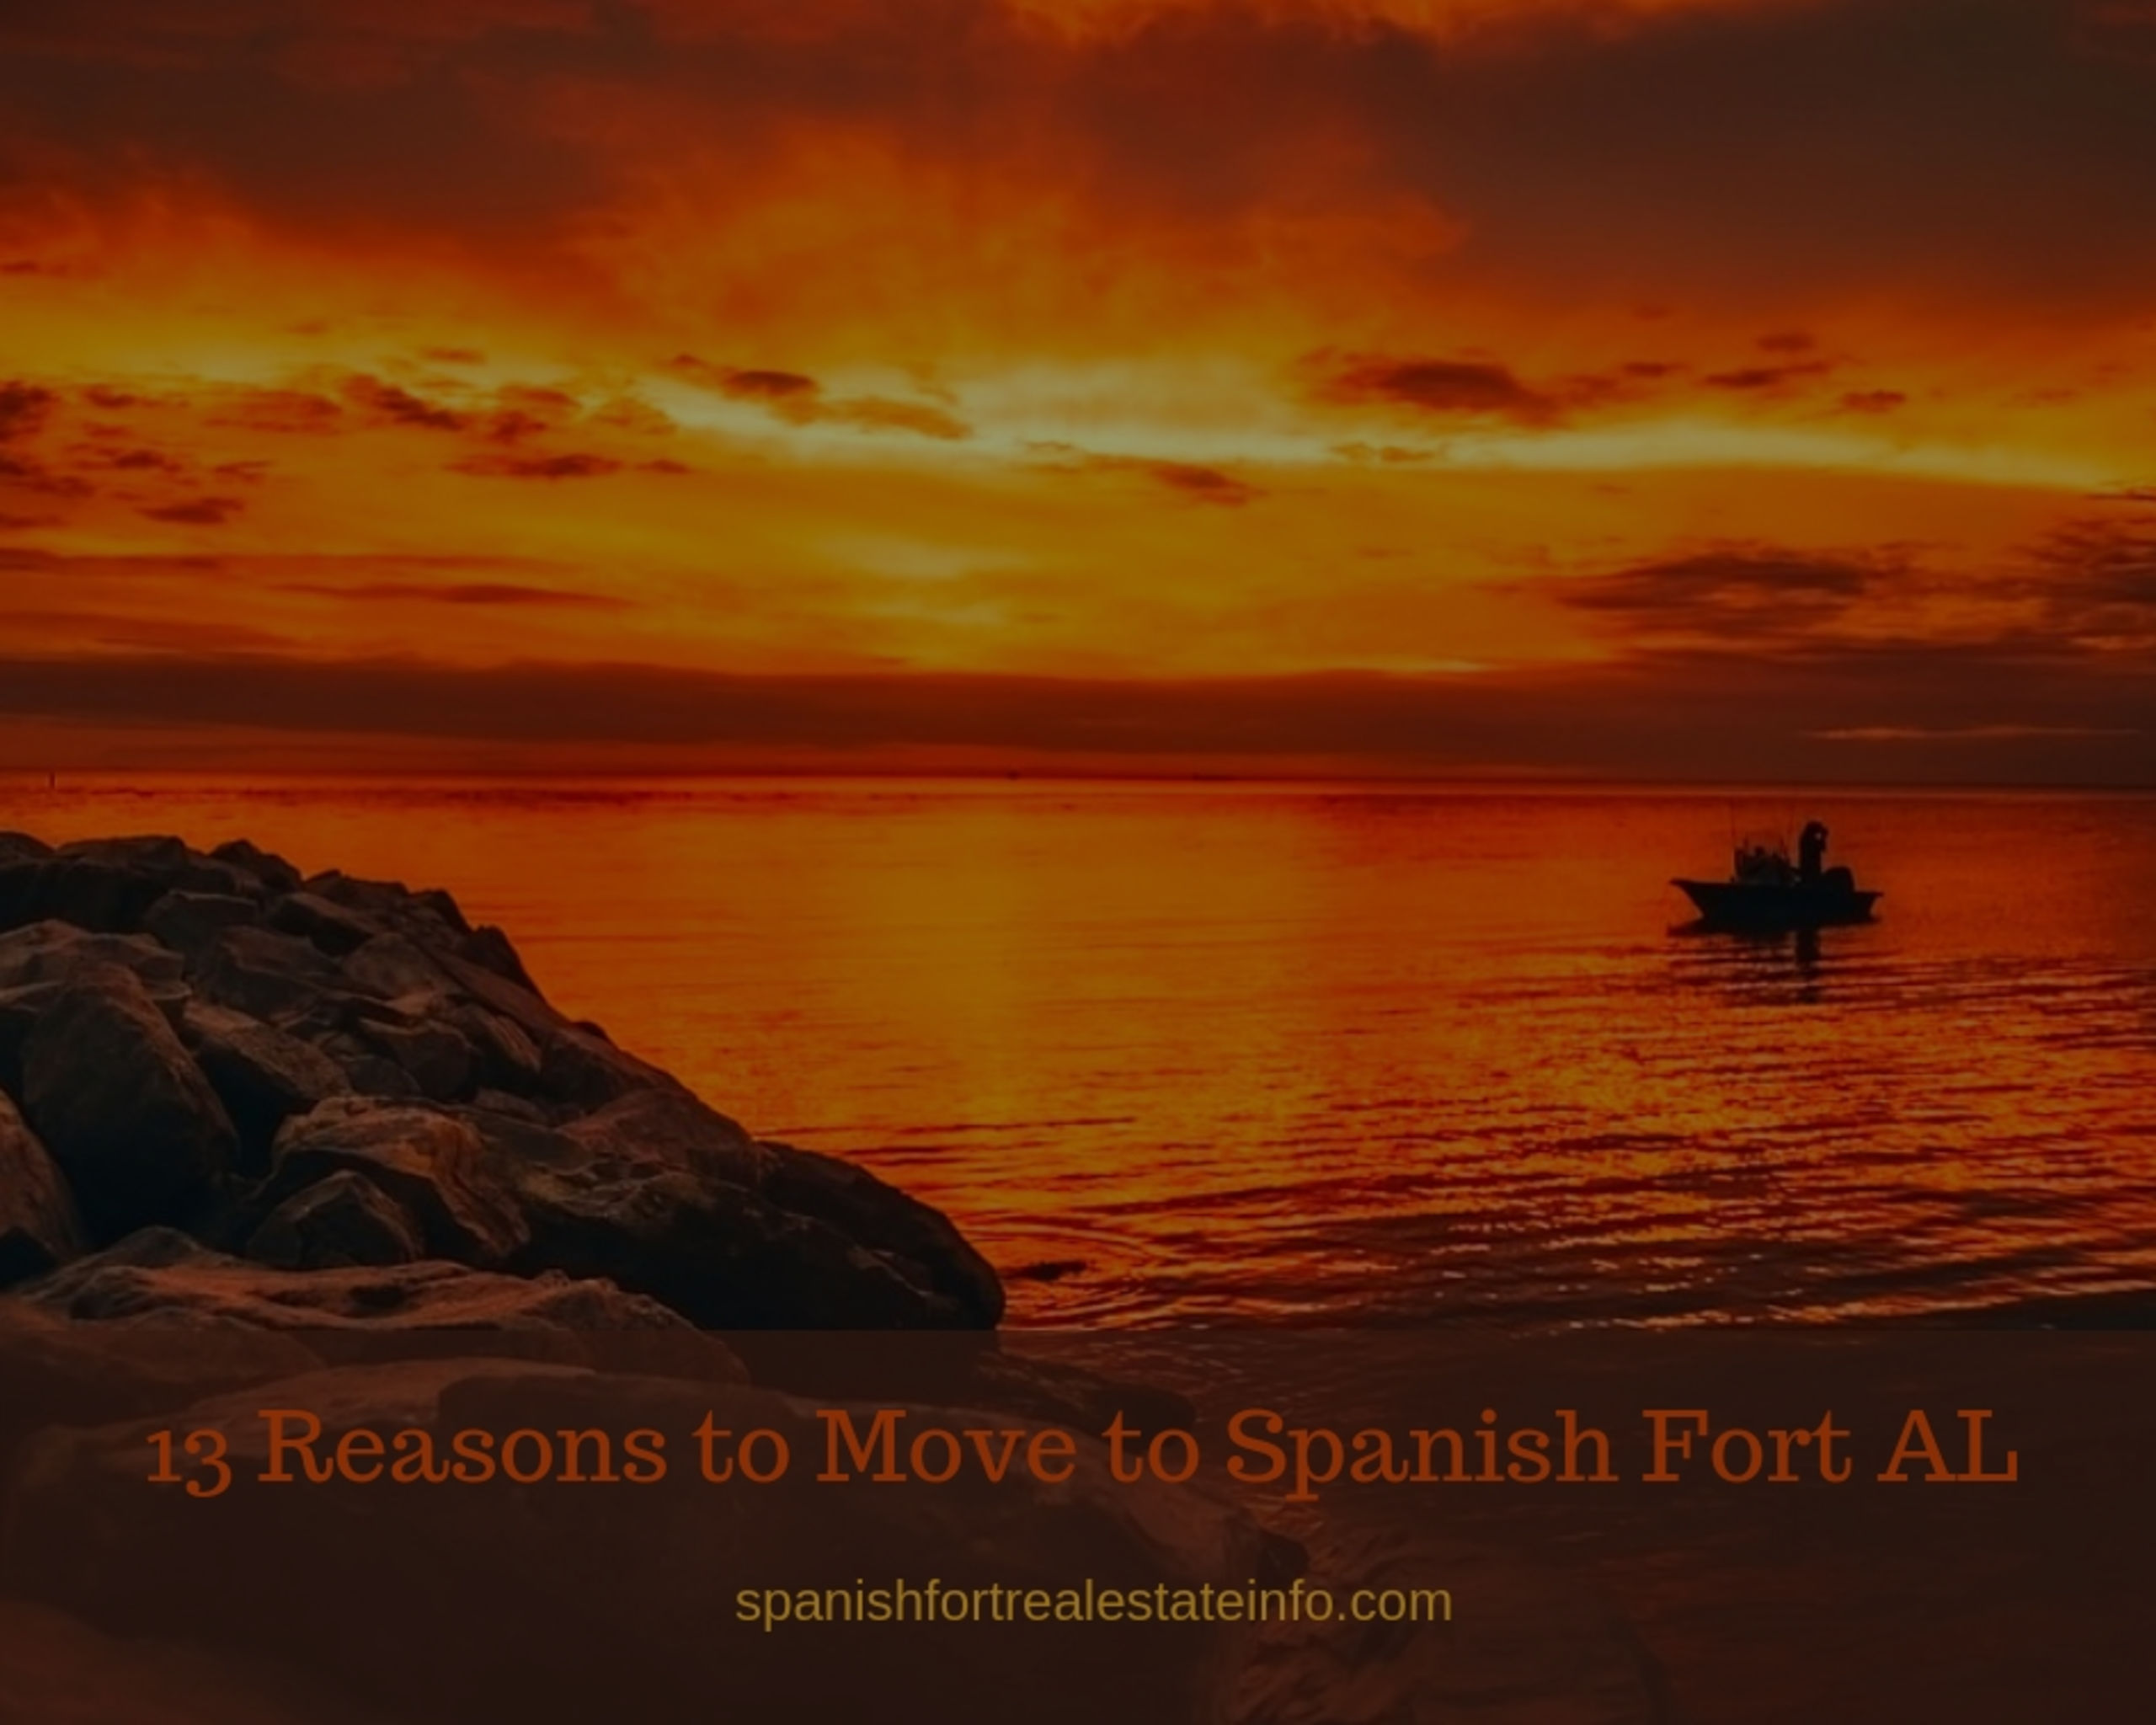 13 Reasons to Move to Spanish Fort AL